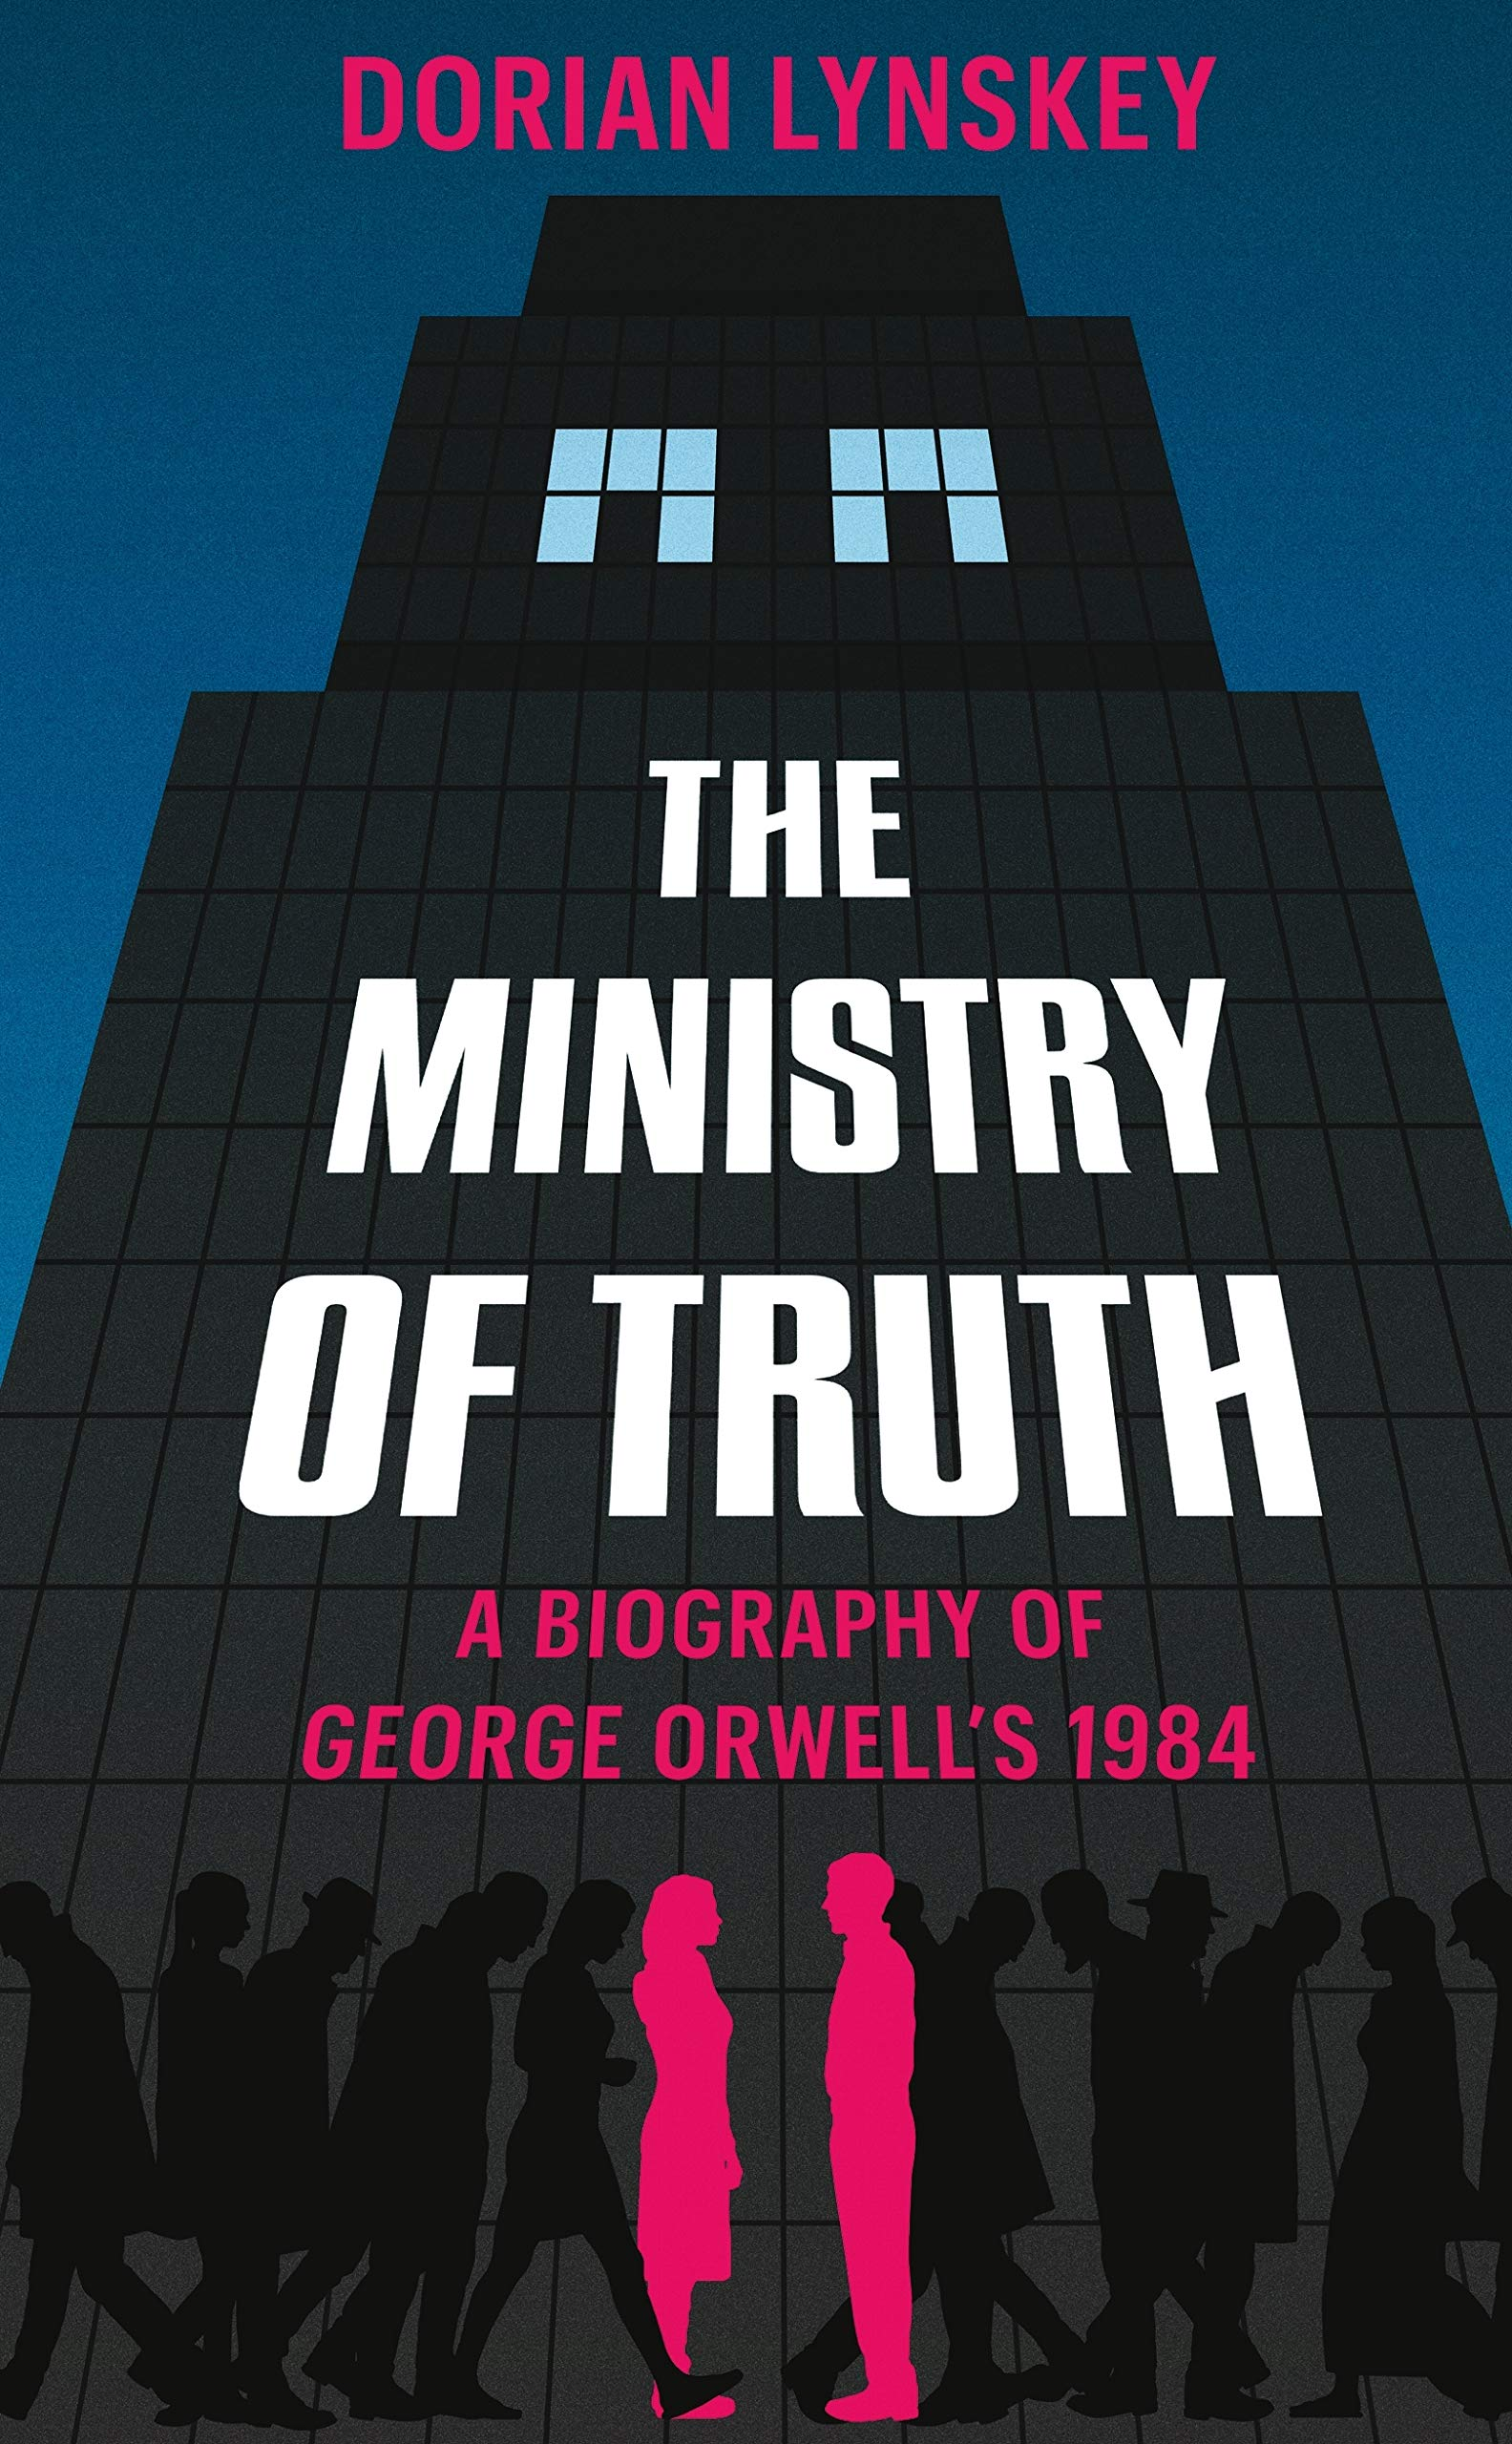 Amazon.com: The Ministry of Truth: A Biography of George Orwell's 1984  (9781509890736): Lynskey, Dorian: Books